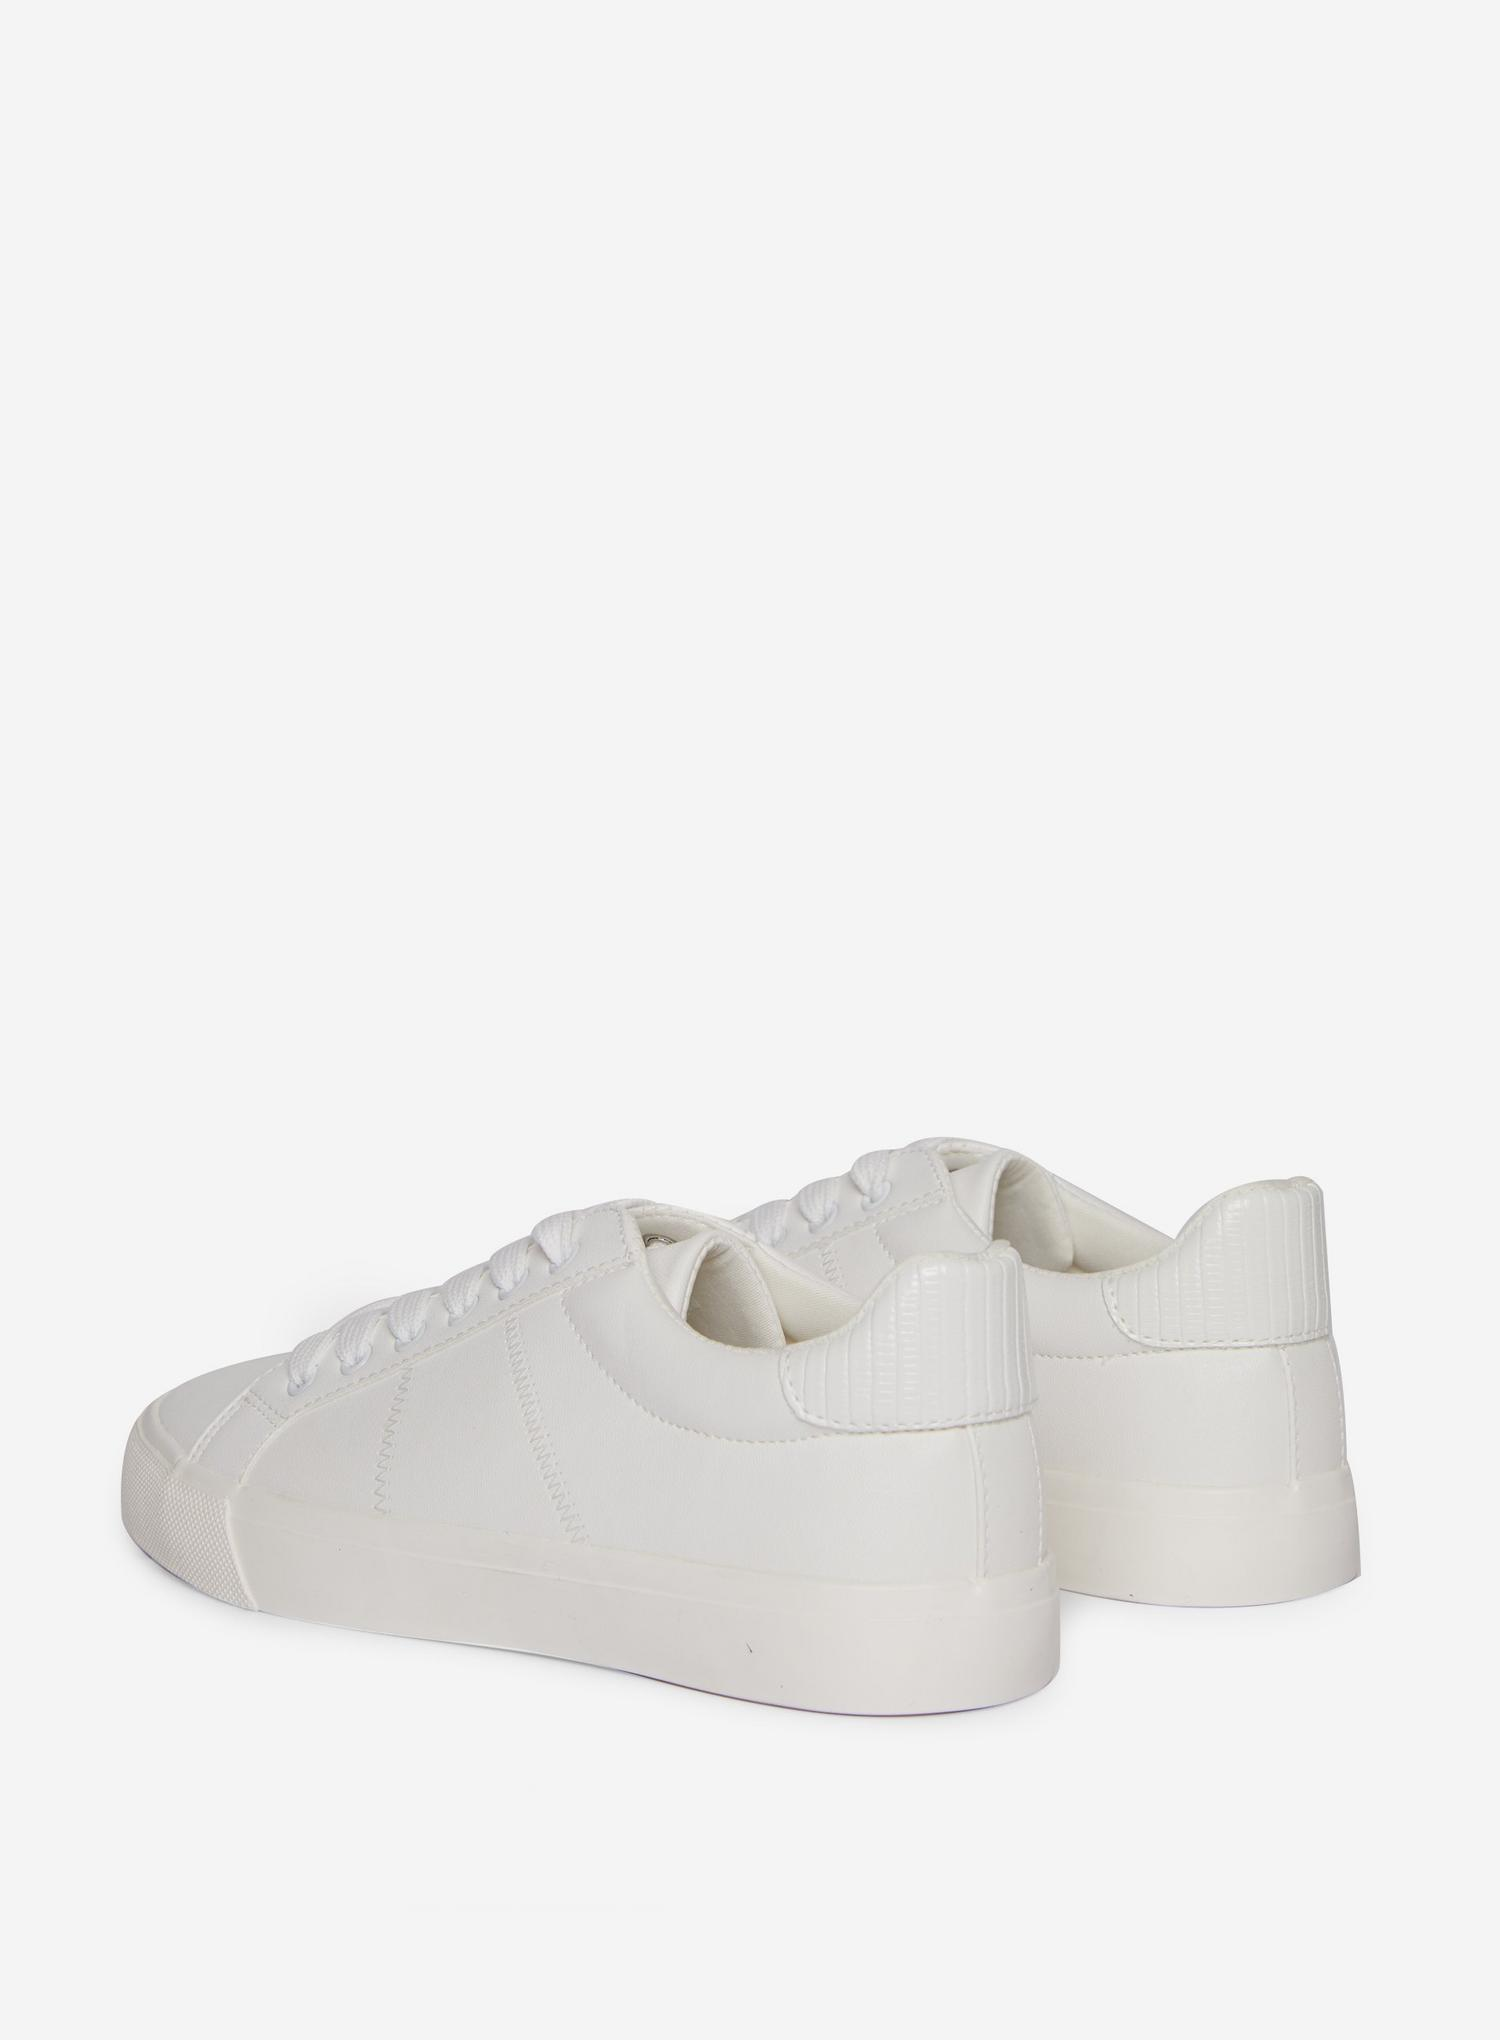 173 White Ink Trainers image number 4